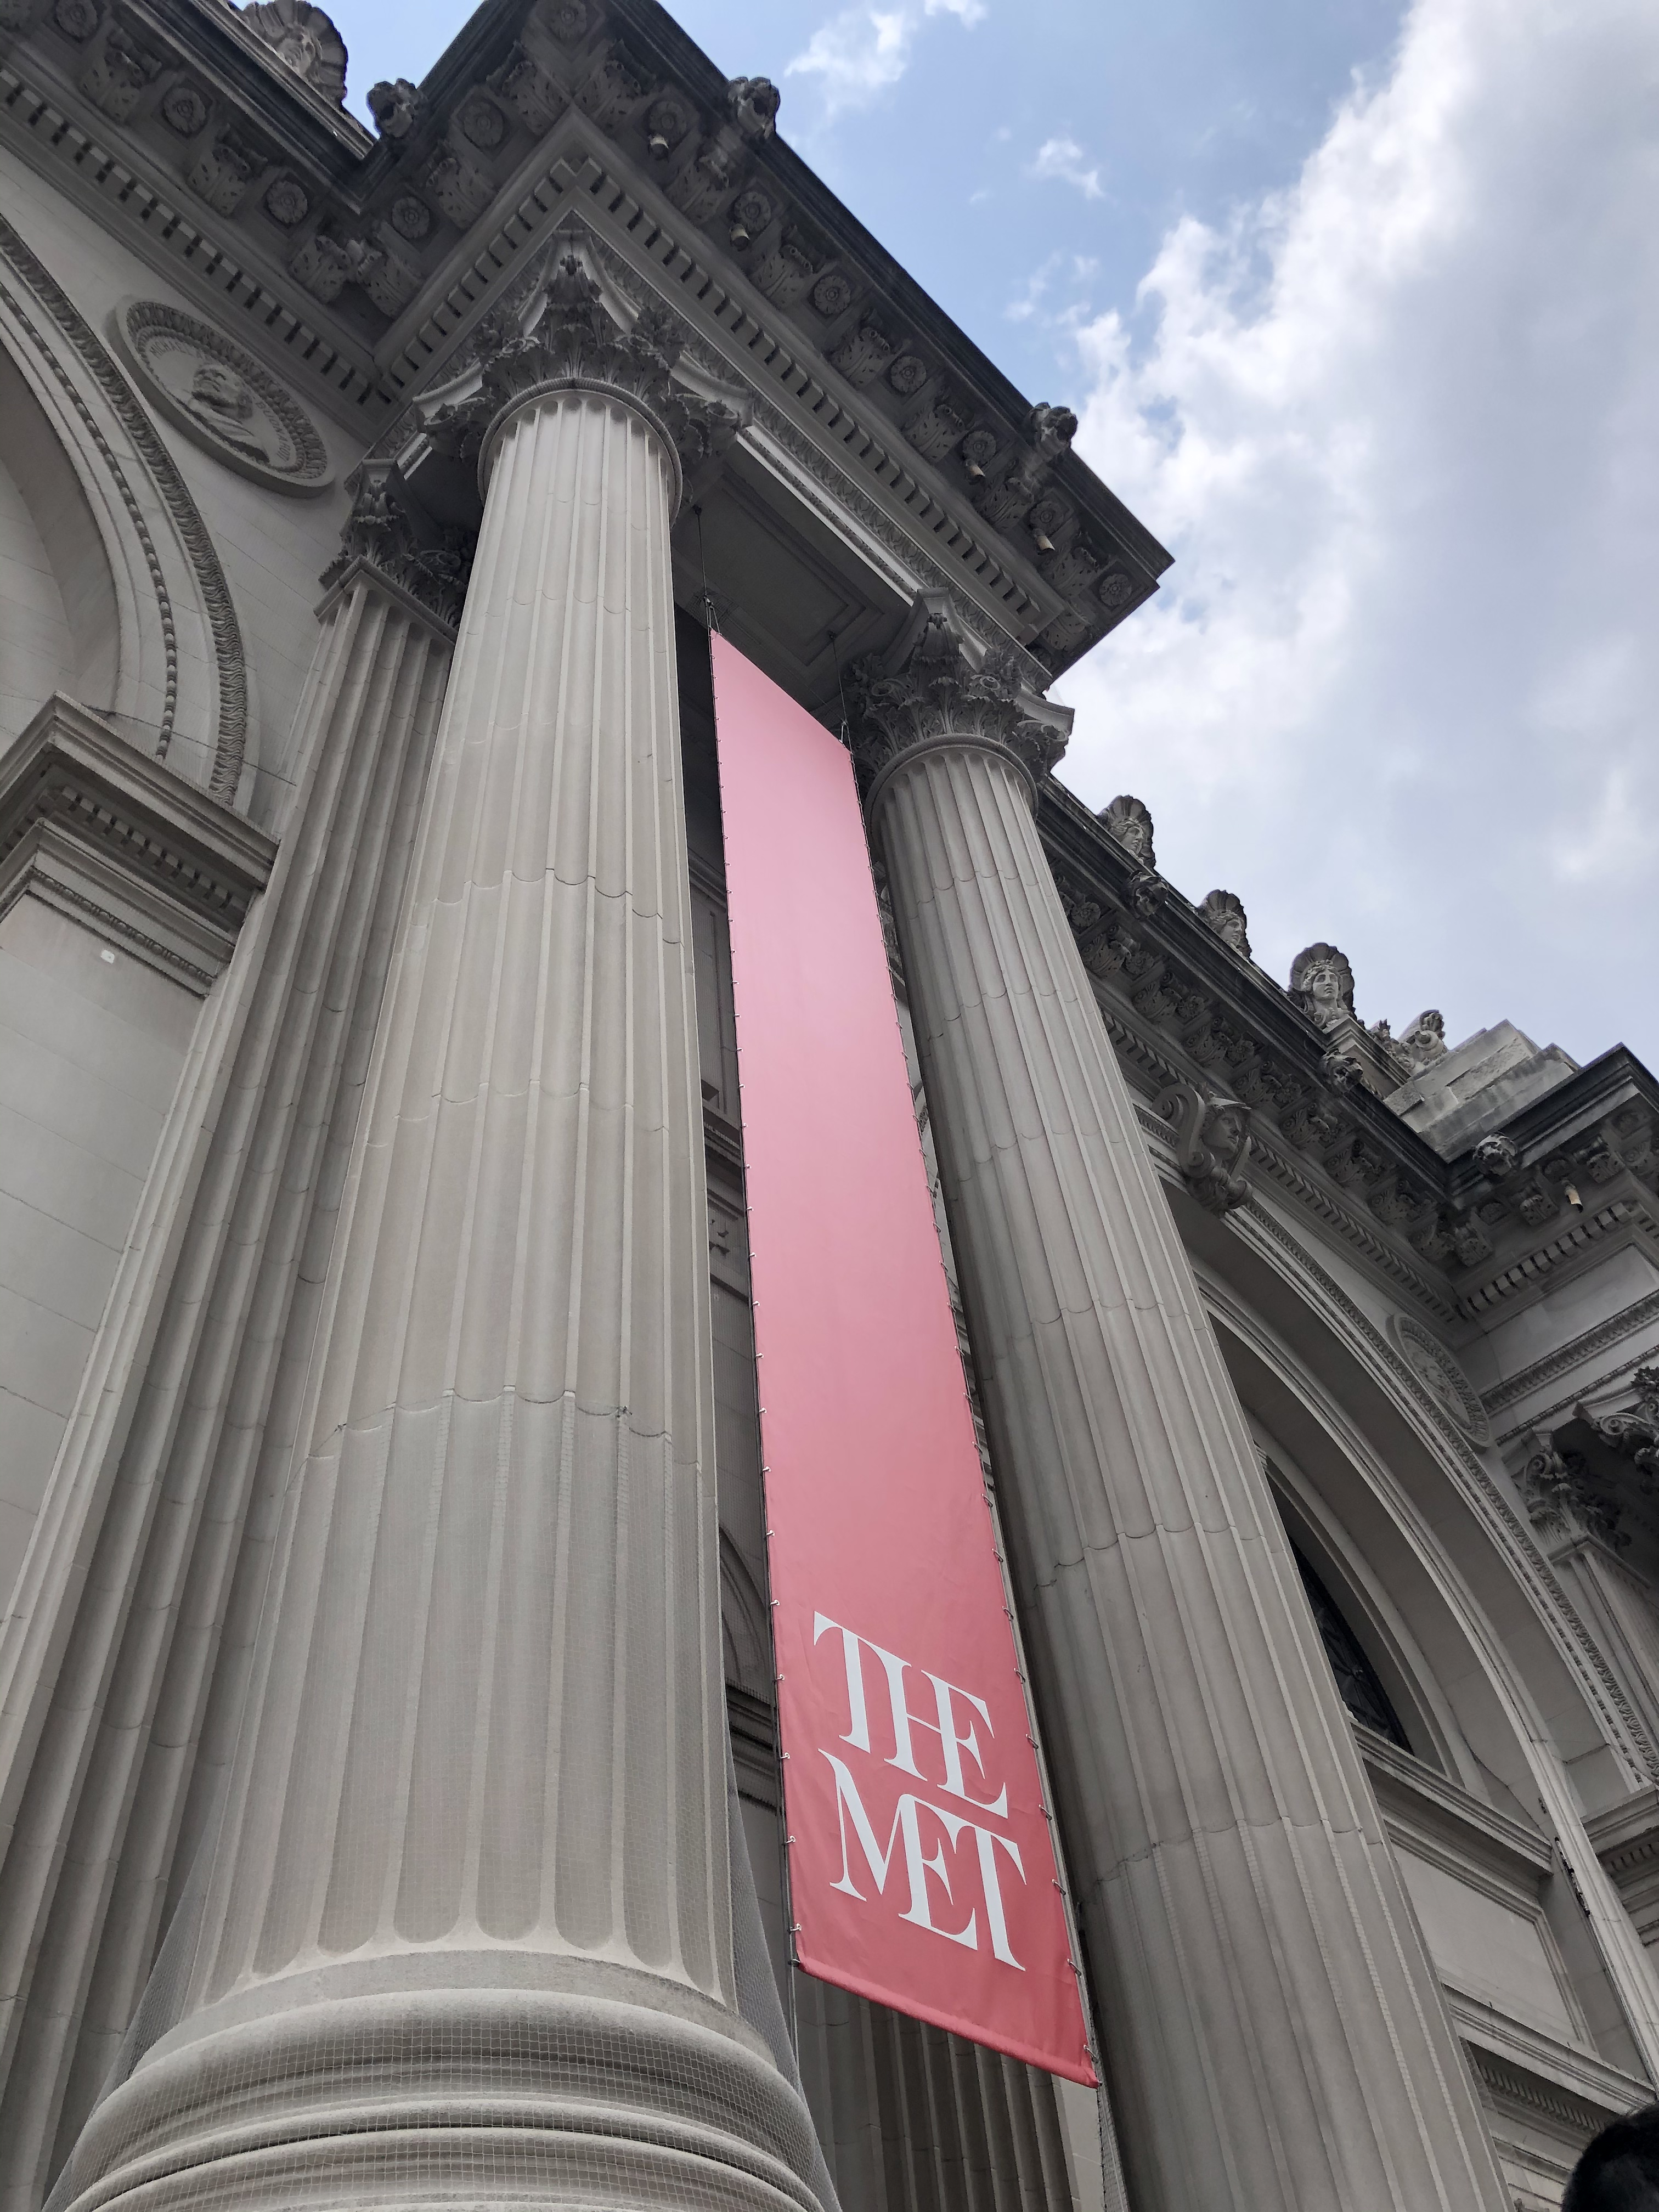 Visiting the MET